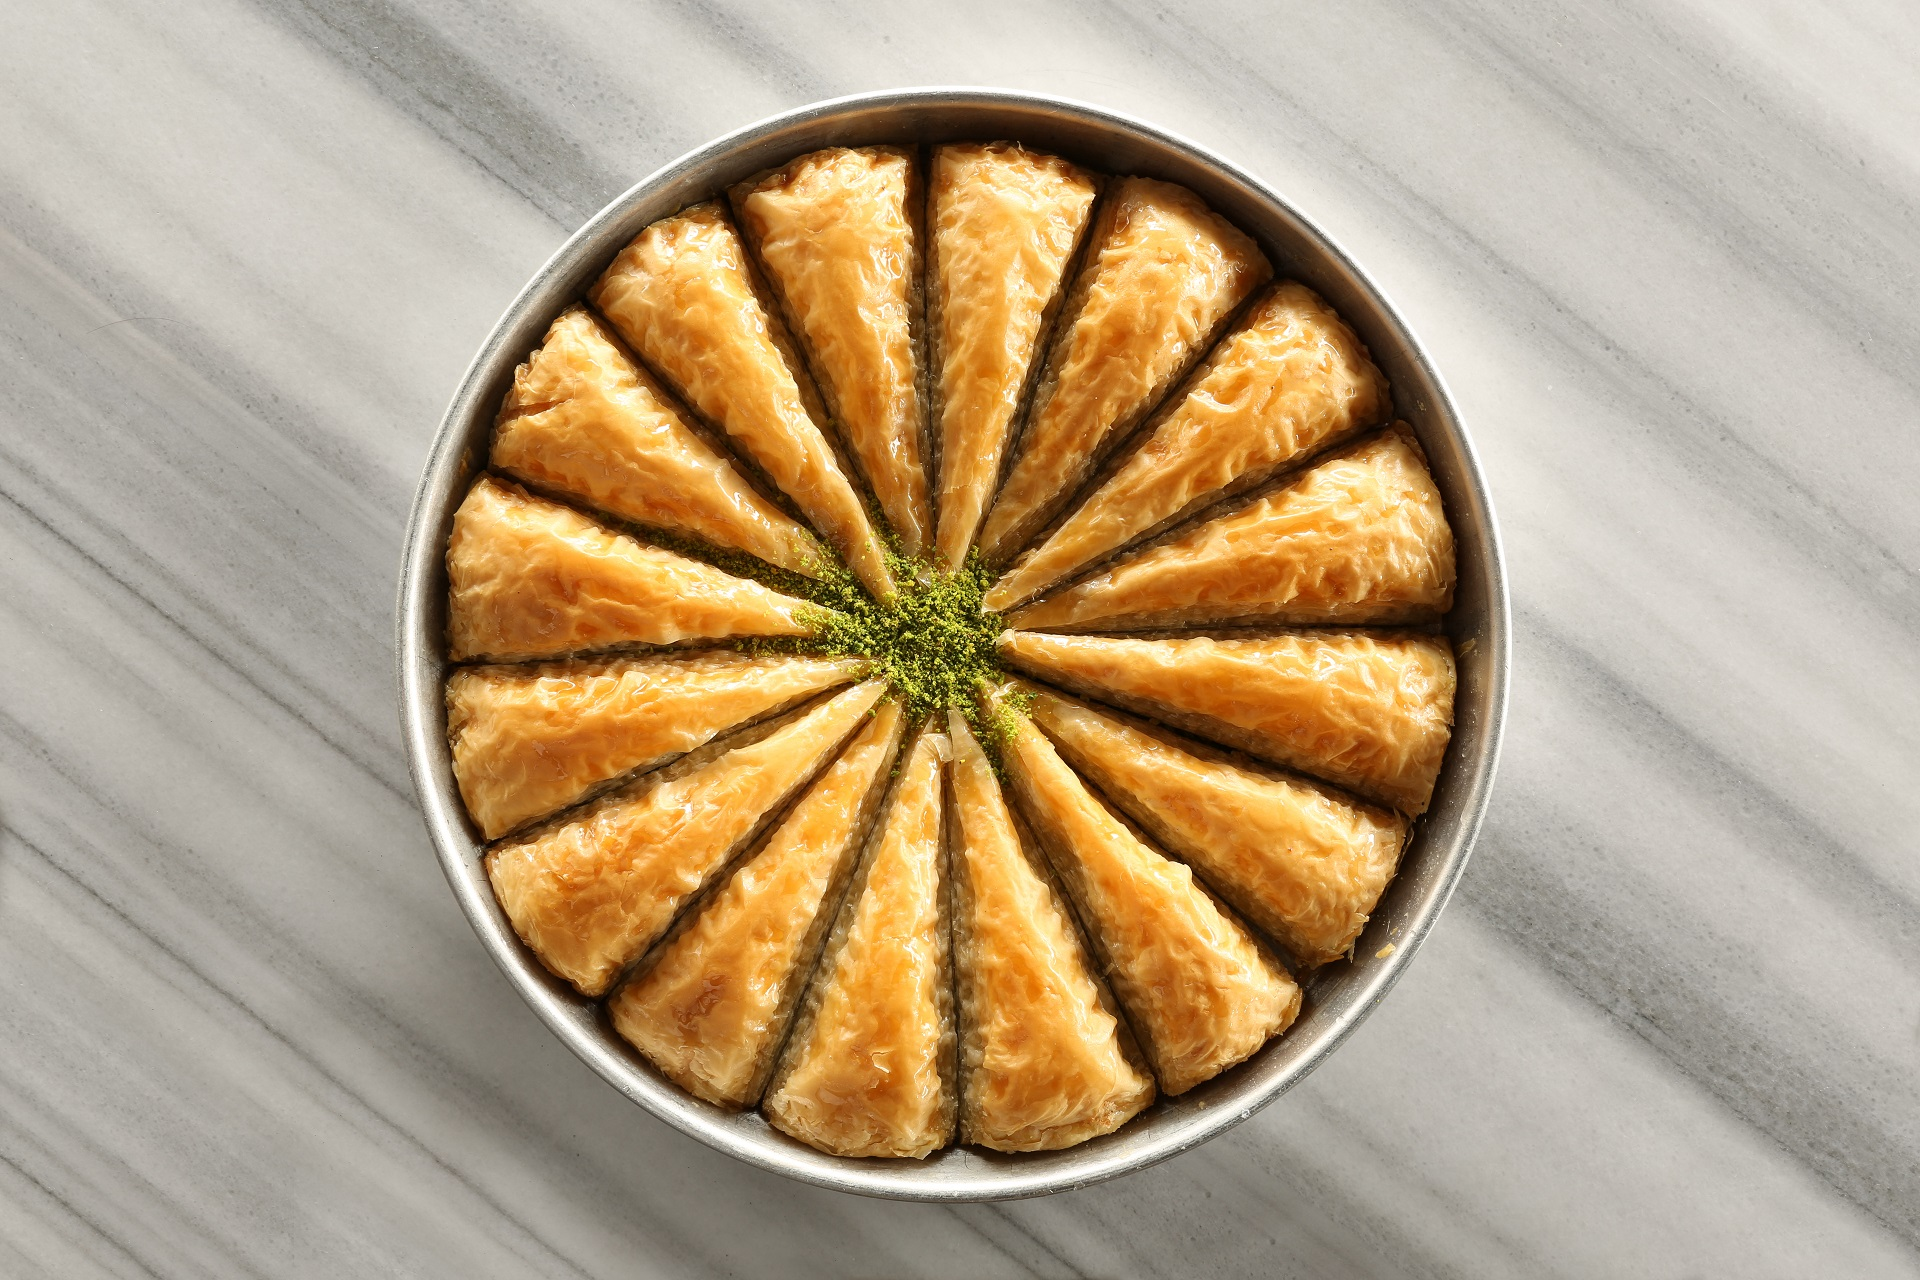 Baklava to replace the traditional birthday cake.